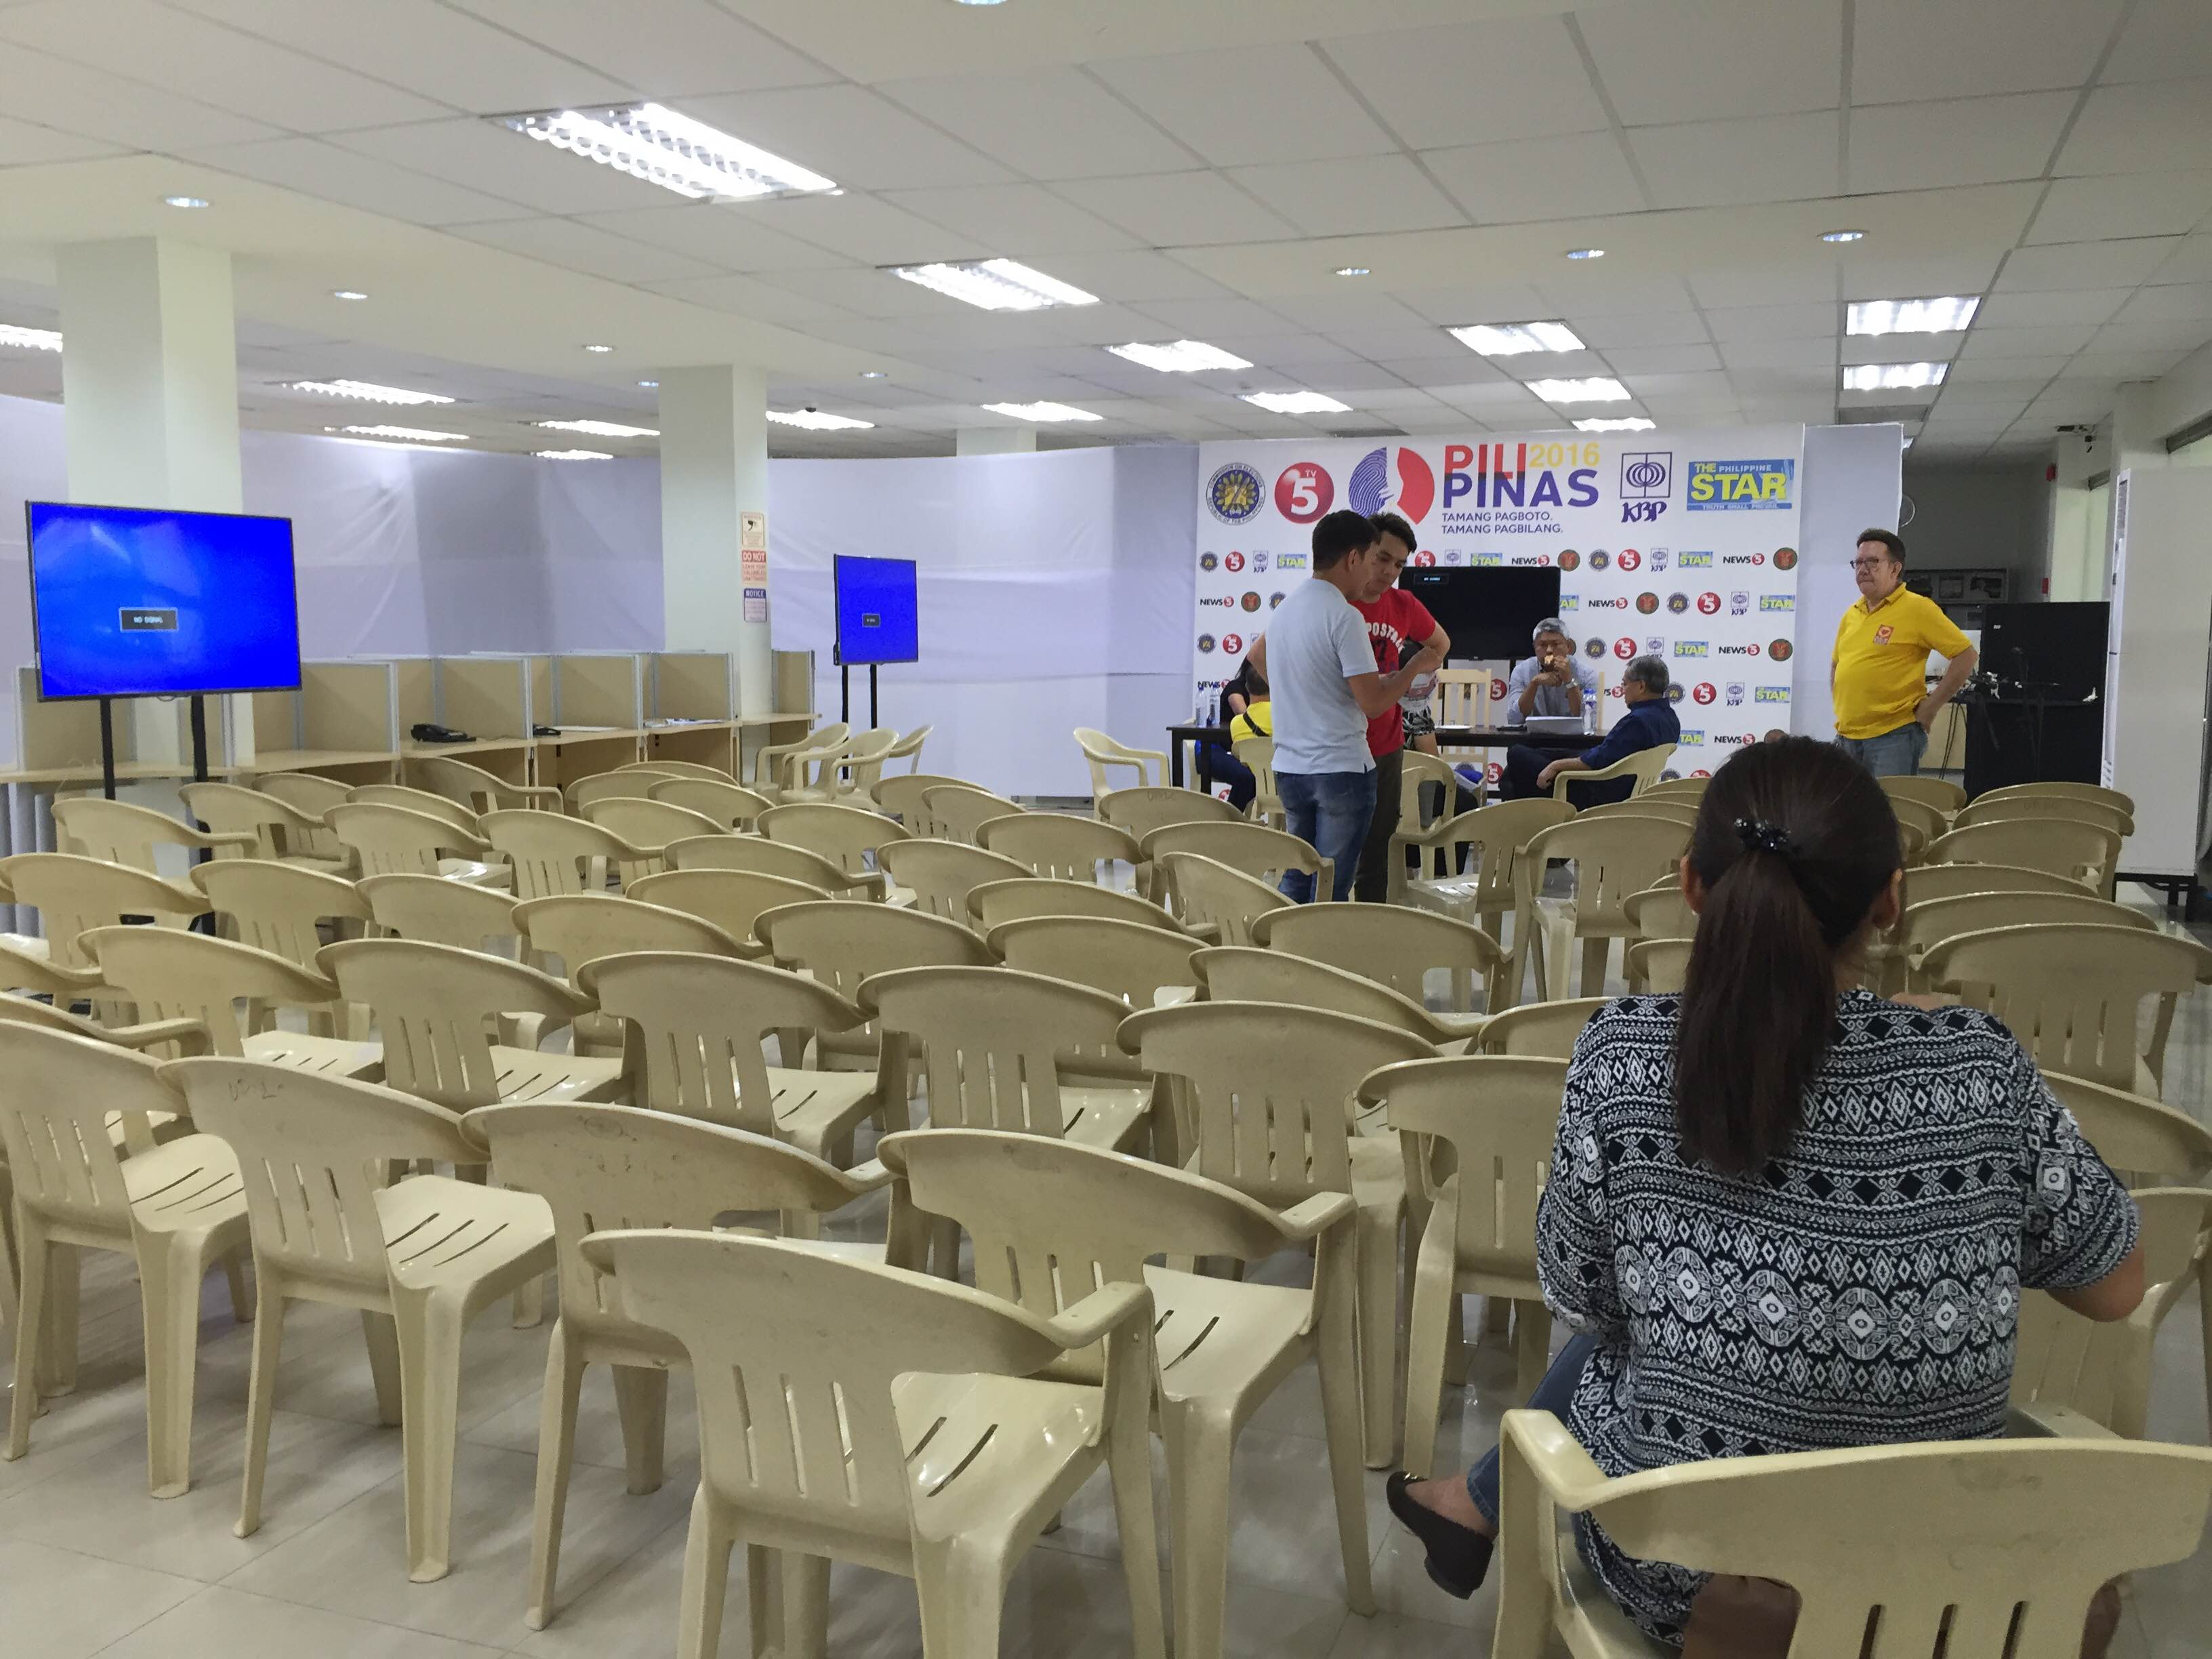 IN PHOTOS UP Cebu Venue Of The 2nd Presidential Debate